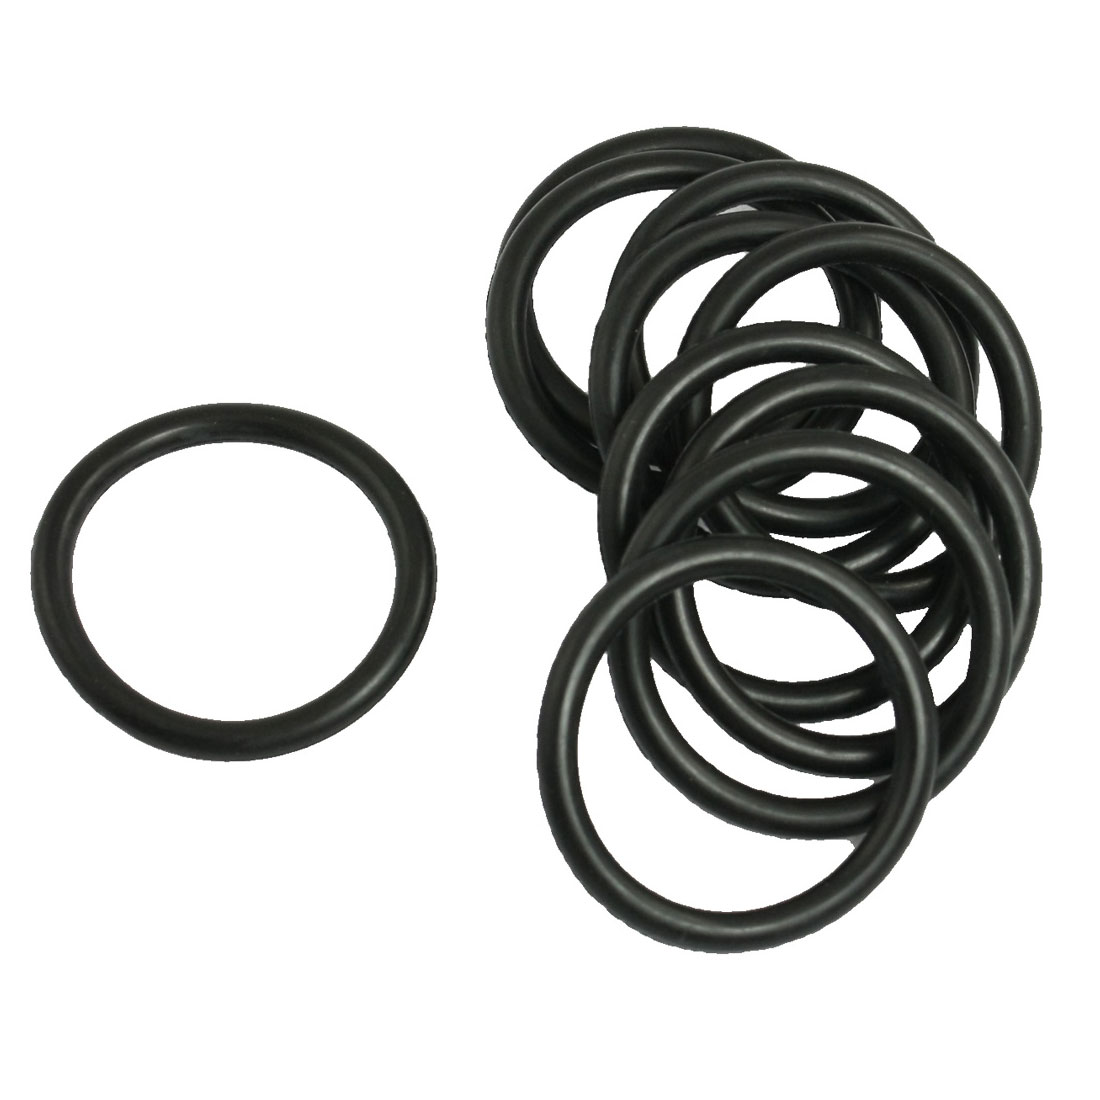 10 Pcs Mechanical NBR O Rings Oil Seal Gaskets 39mm x 4mm x 31mm